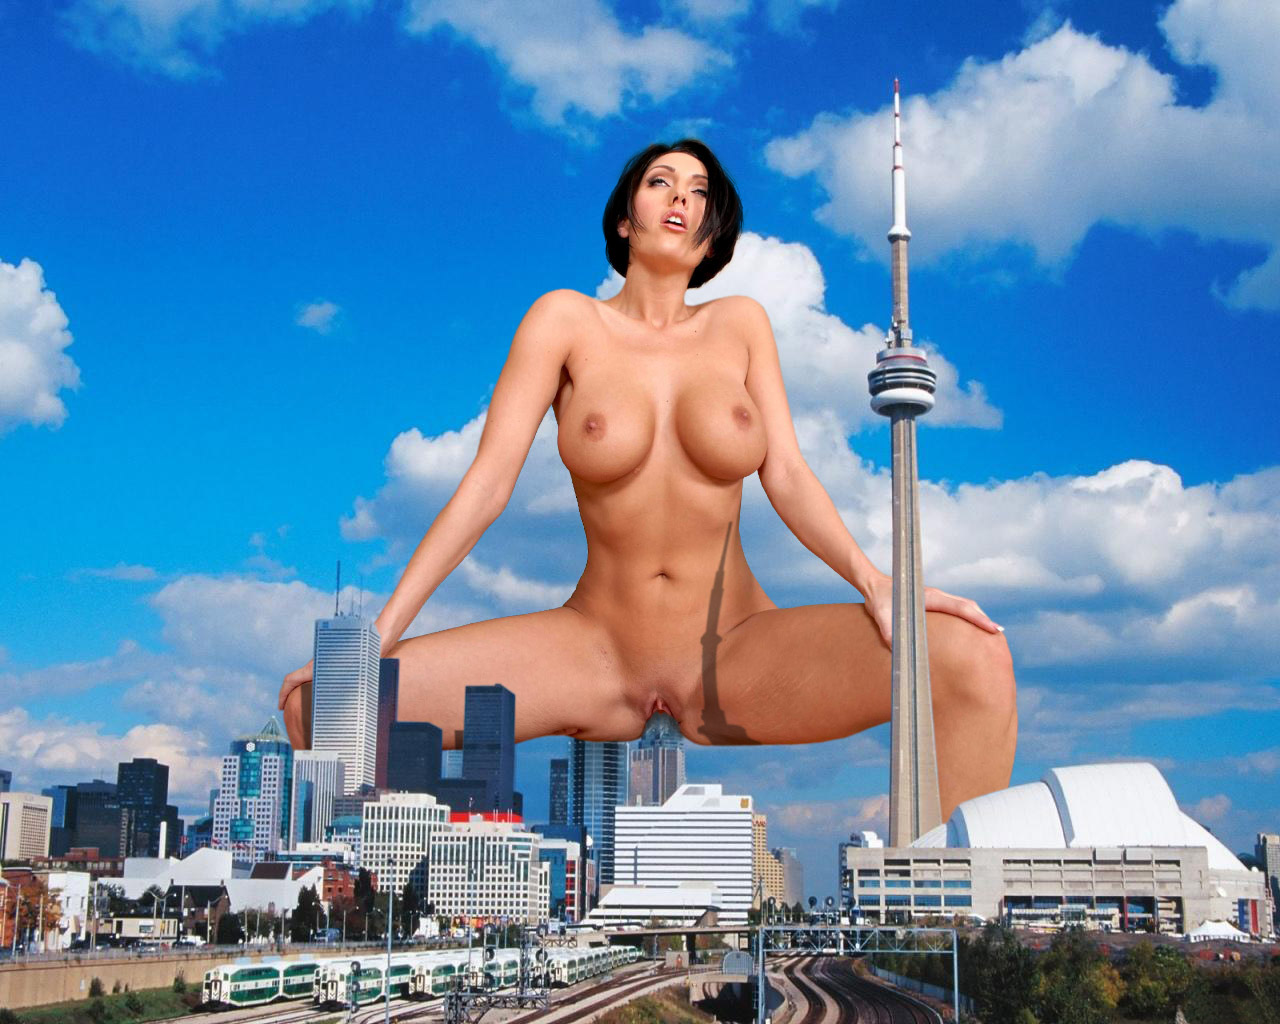 Giantess nude hentay scene